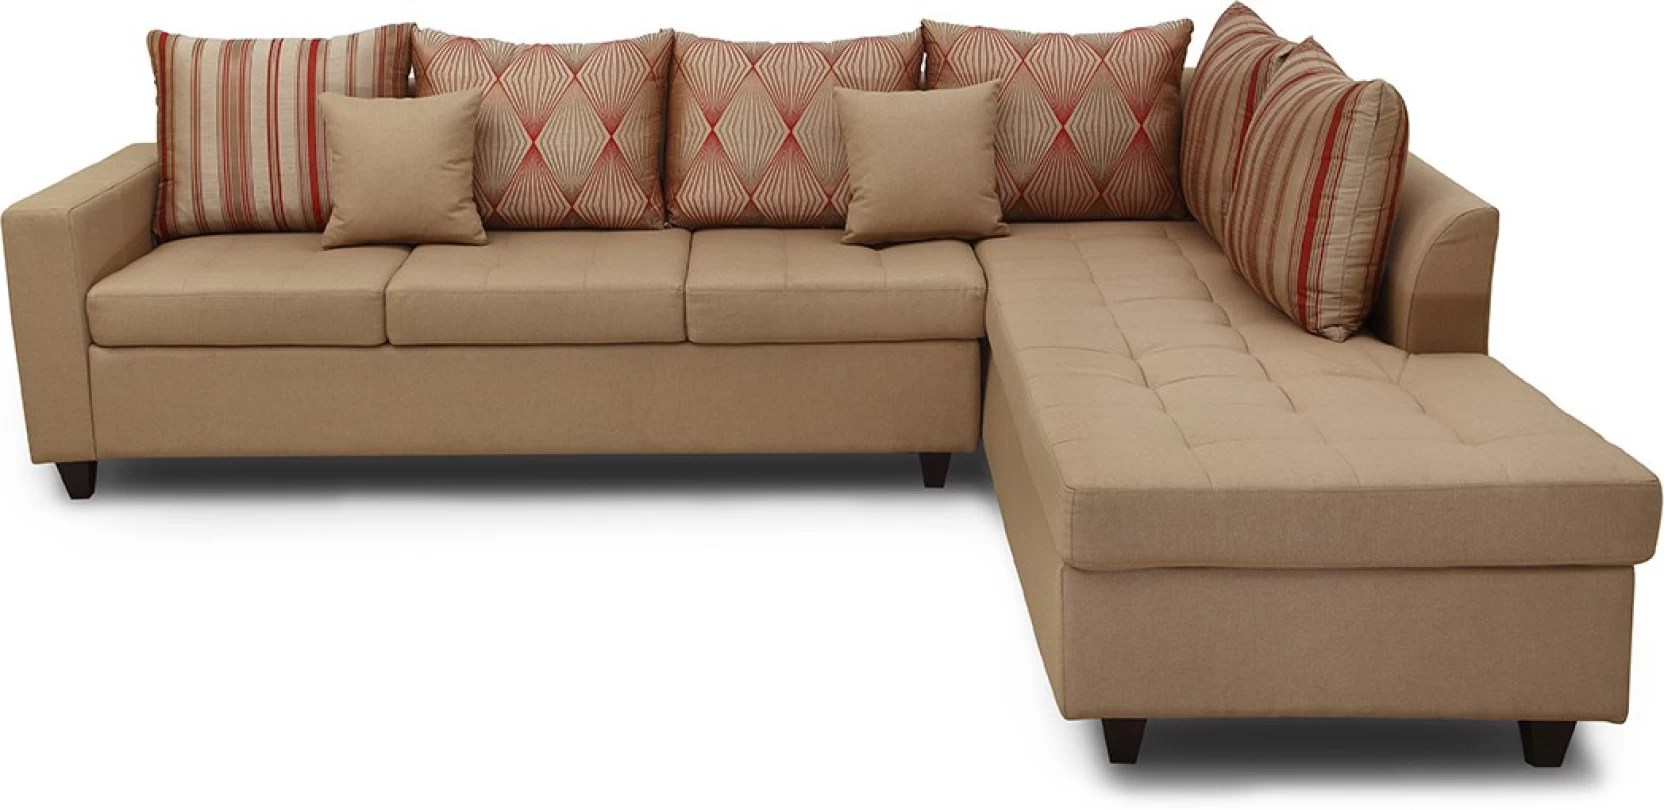 leather fabric for sofa india full size bi fold futon bed hometown belmont lhs 6 seater modular price in